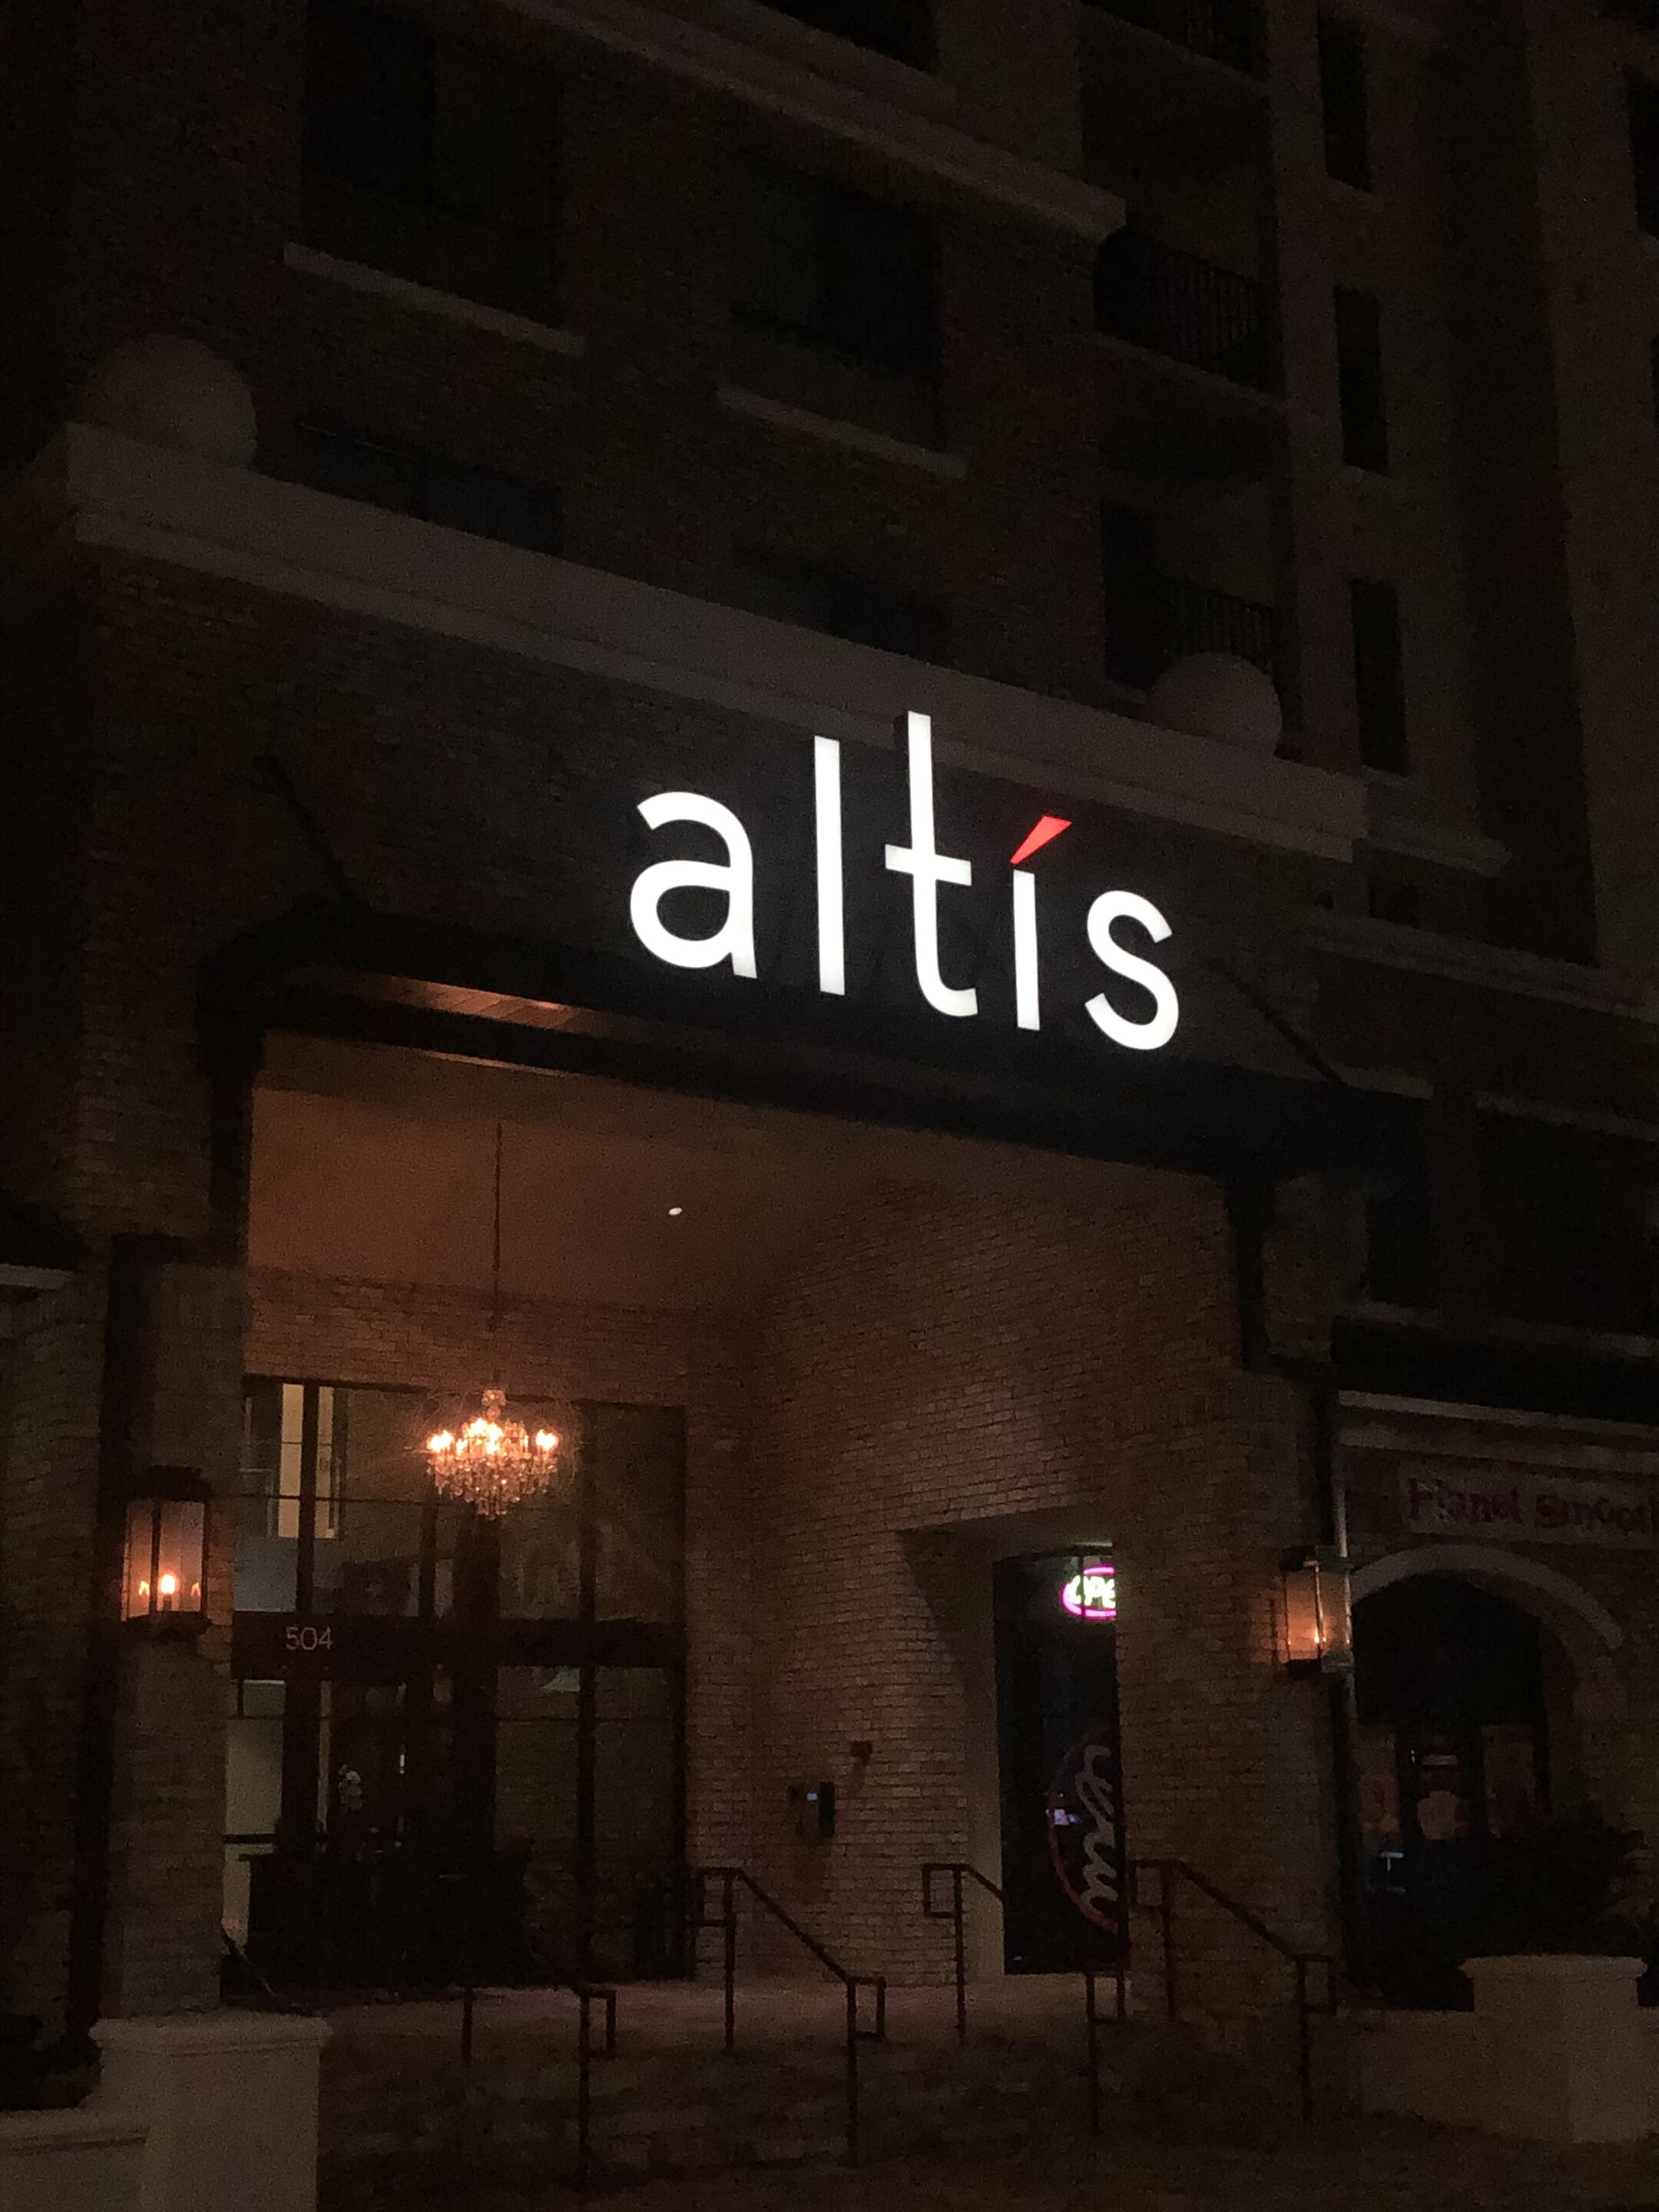 Altis exterior building sign over entry